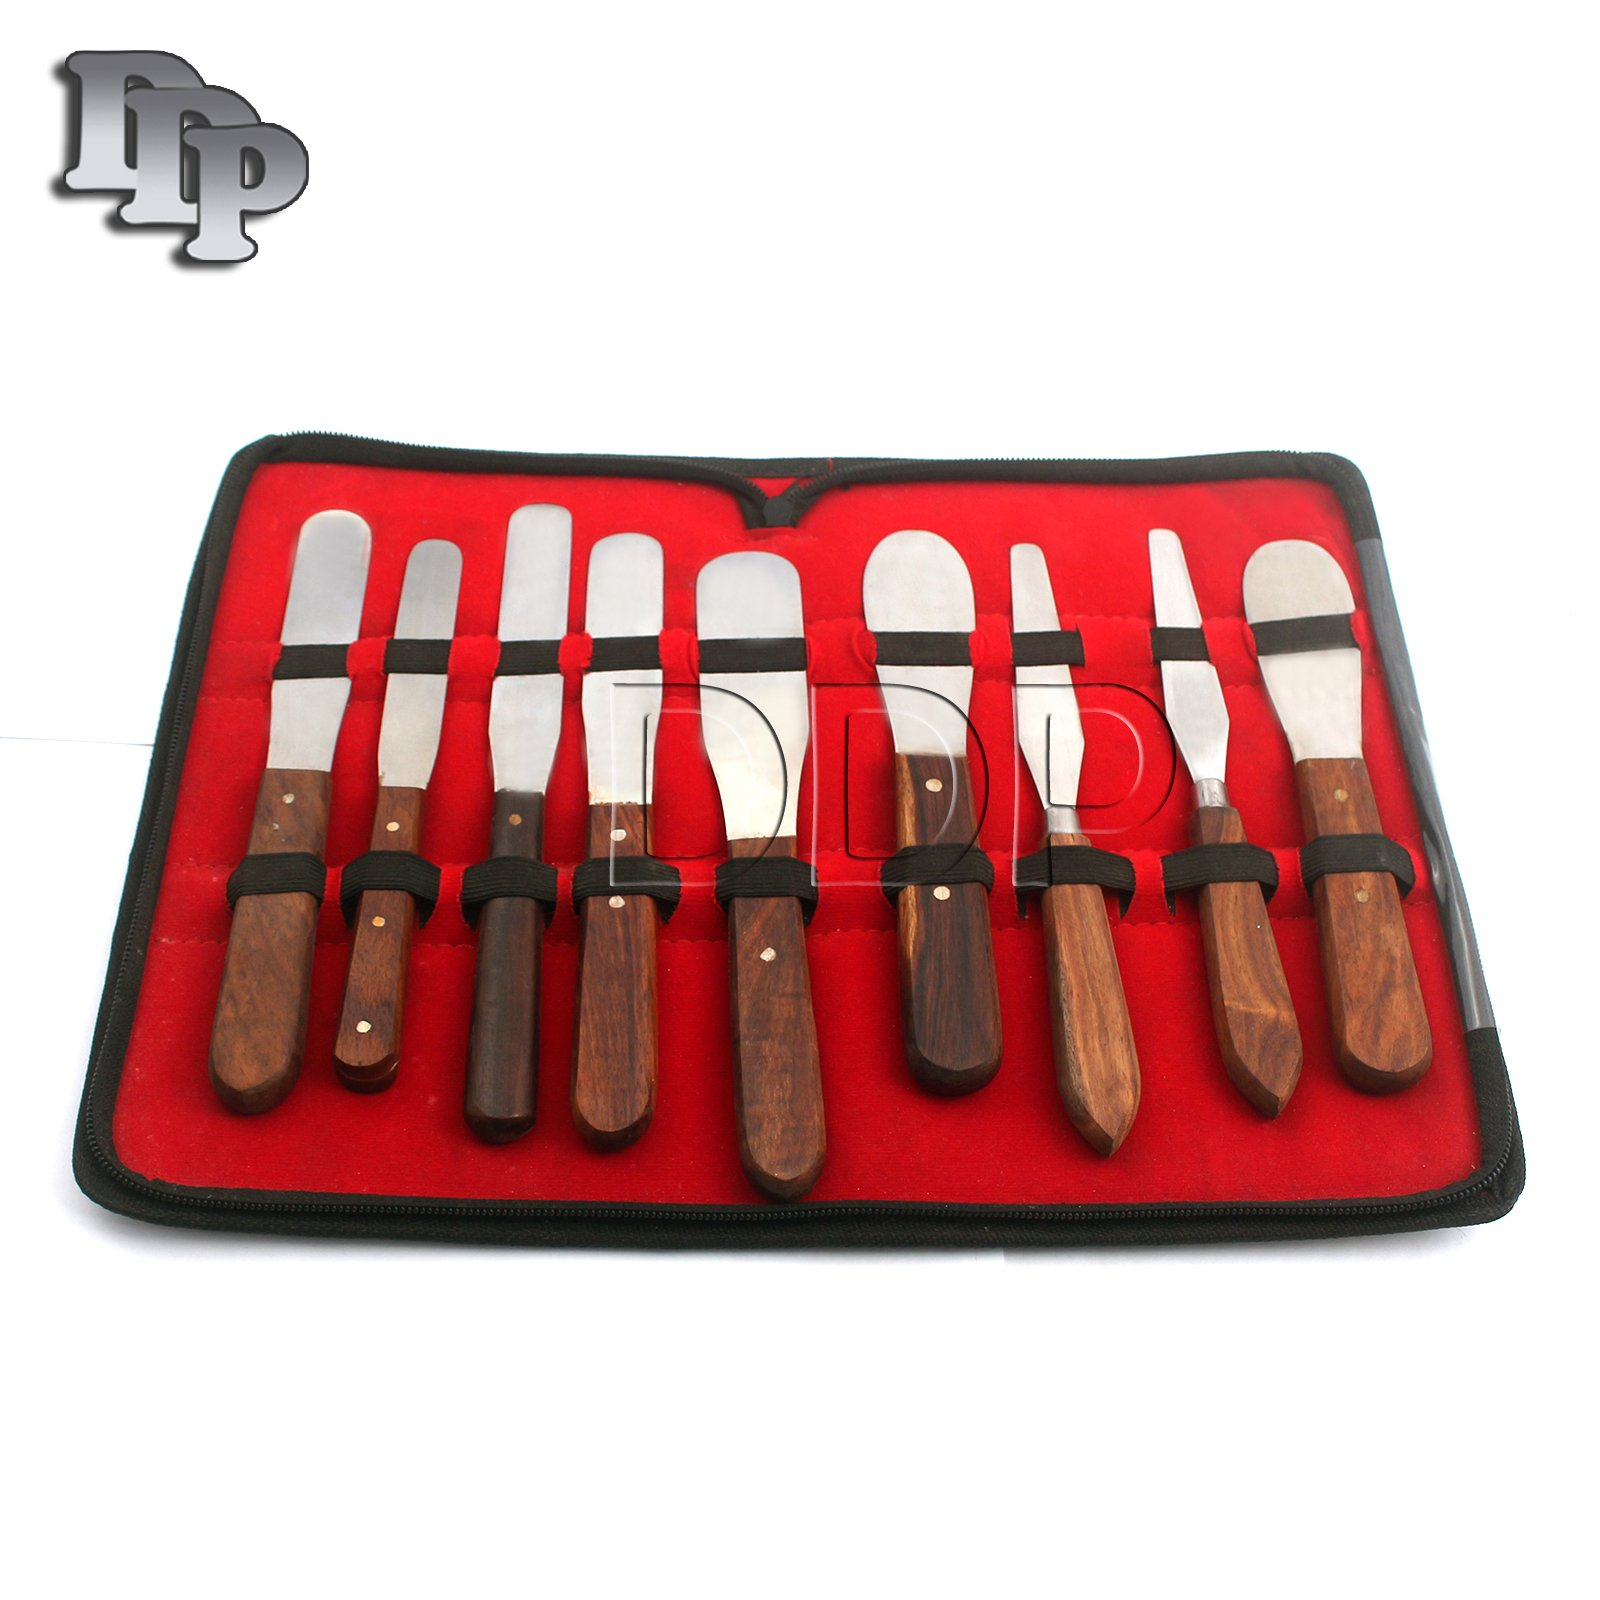 DDP NEW GERMAN GRADE STAINLESS STEEL SET OF 9 DENTAL INSTRUMENTS LAB SPATULA LAB INSTRUMENTS SPATULA-WOODEN HANDLE